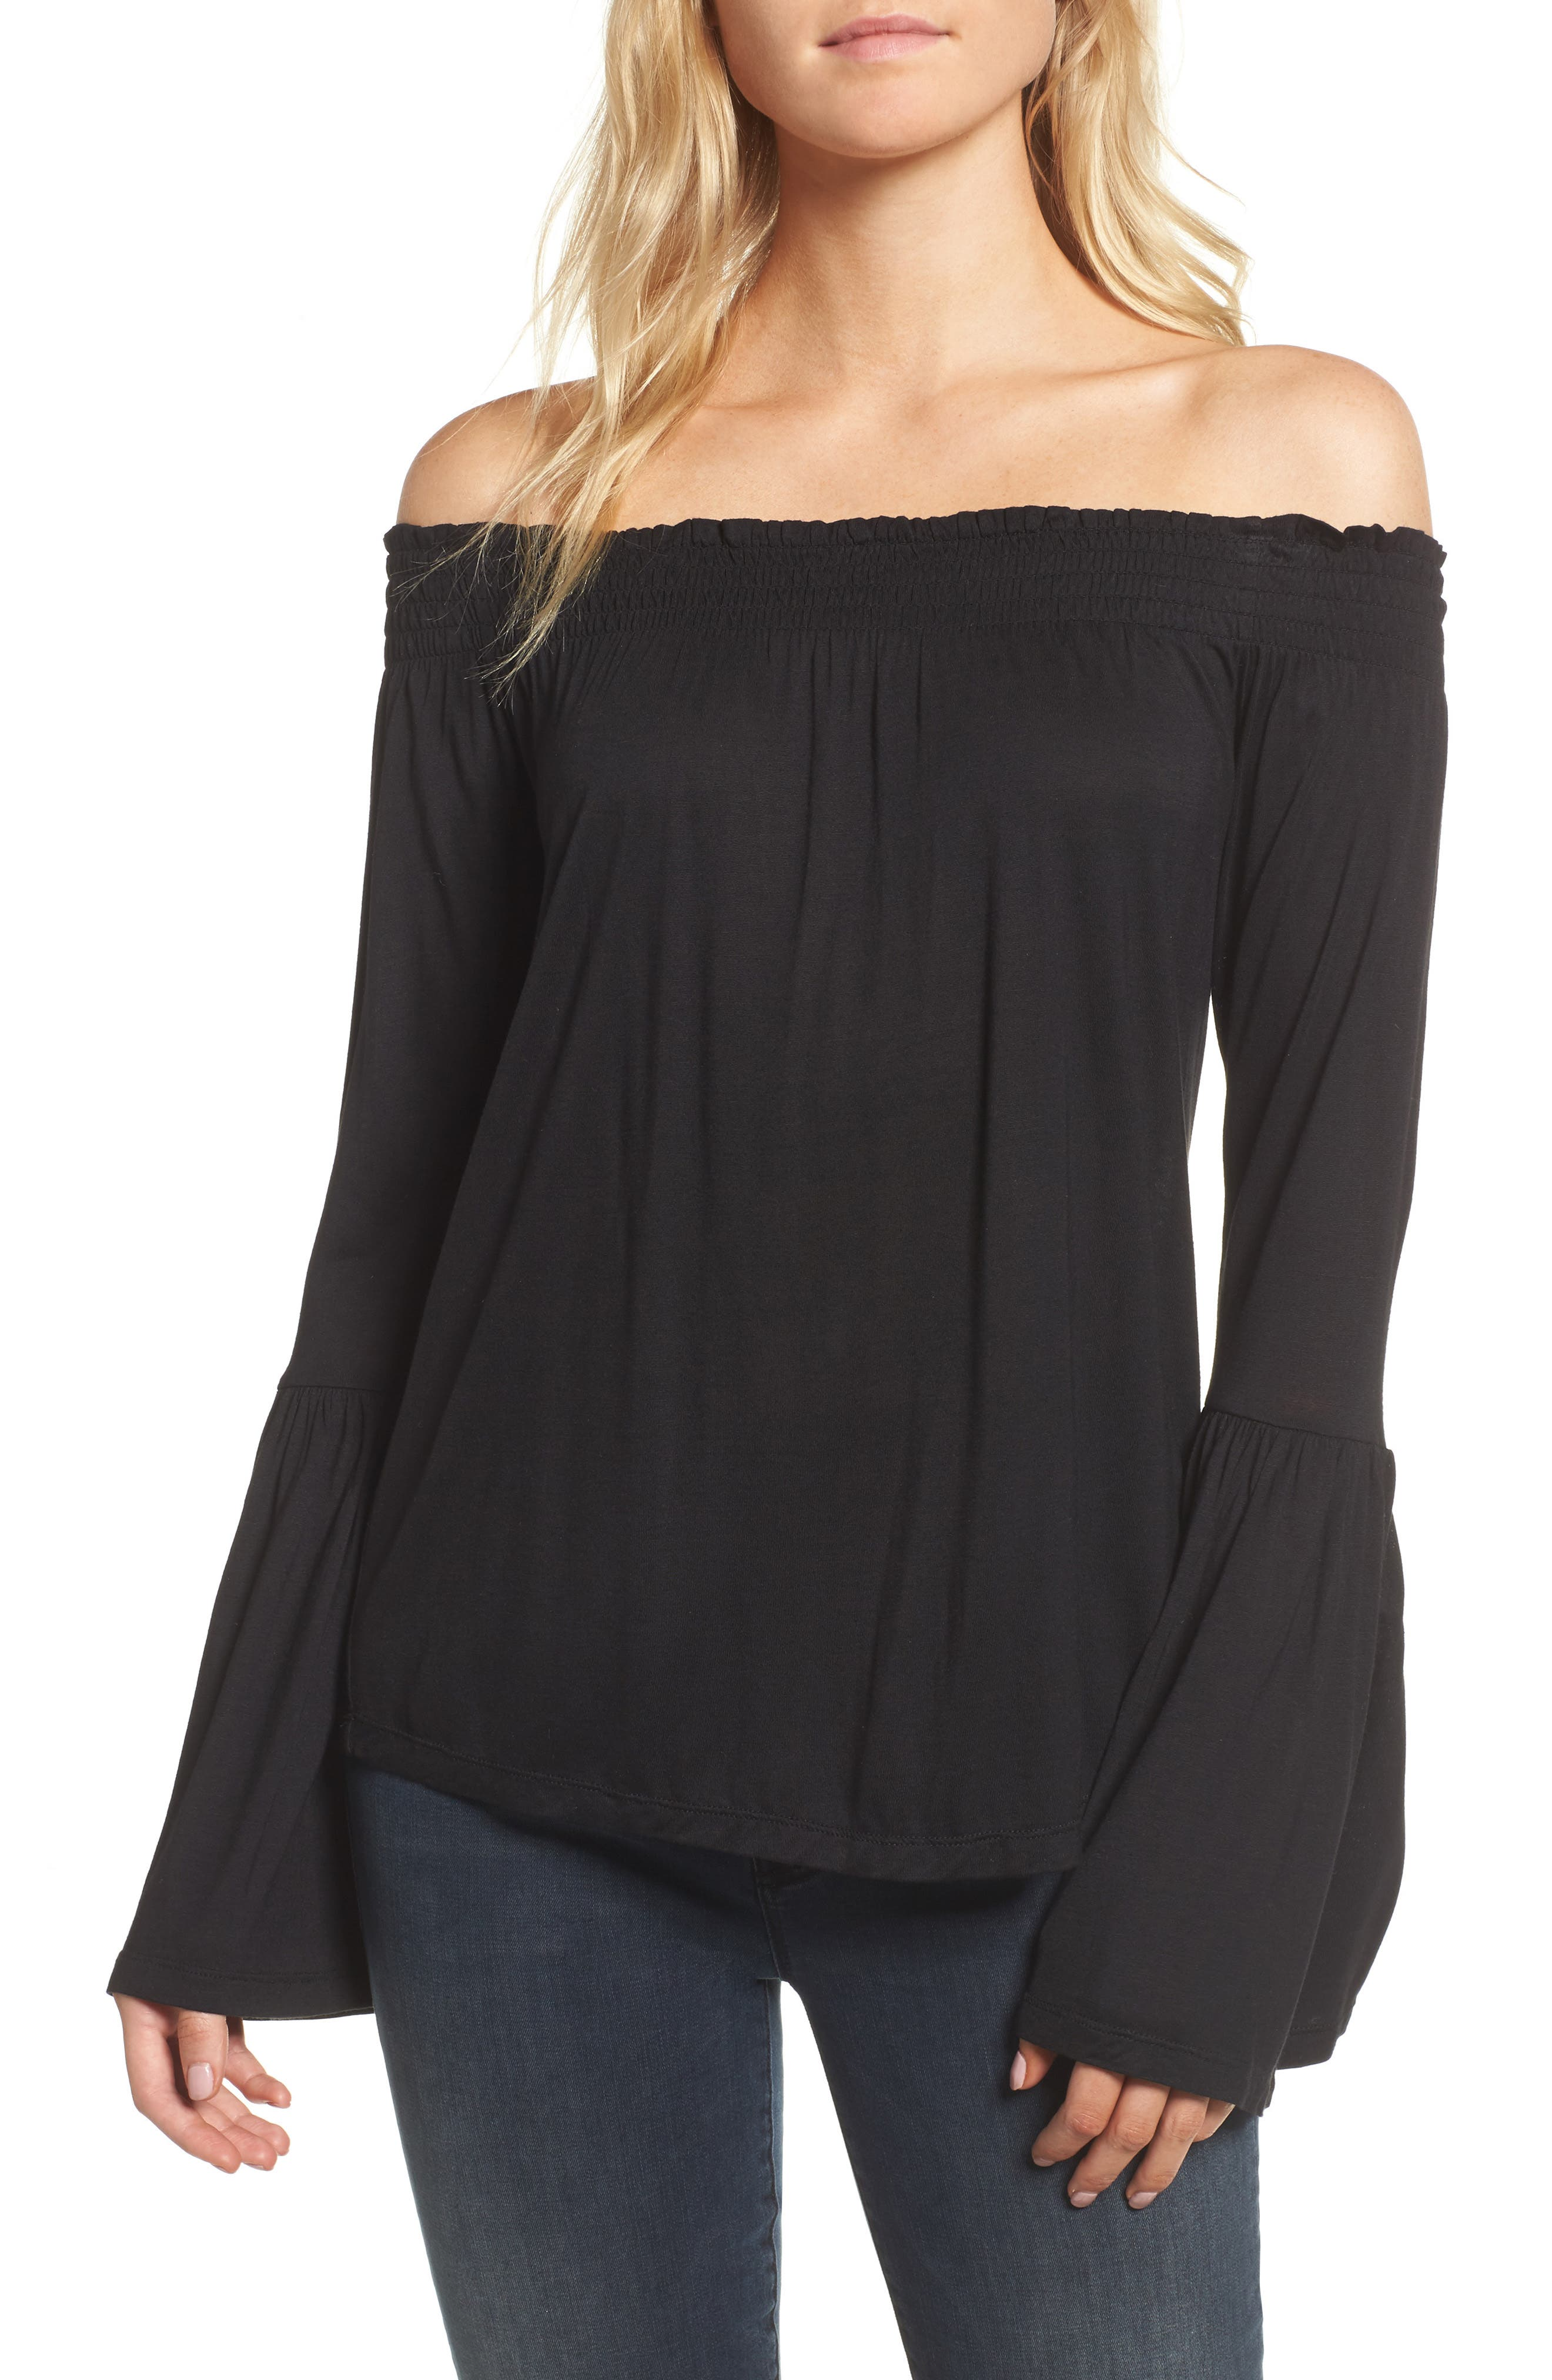 Luck Off the Shoulder Top,                         Main,                         color,